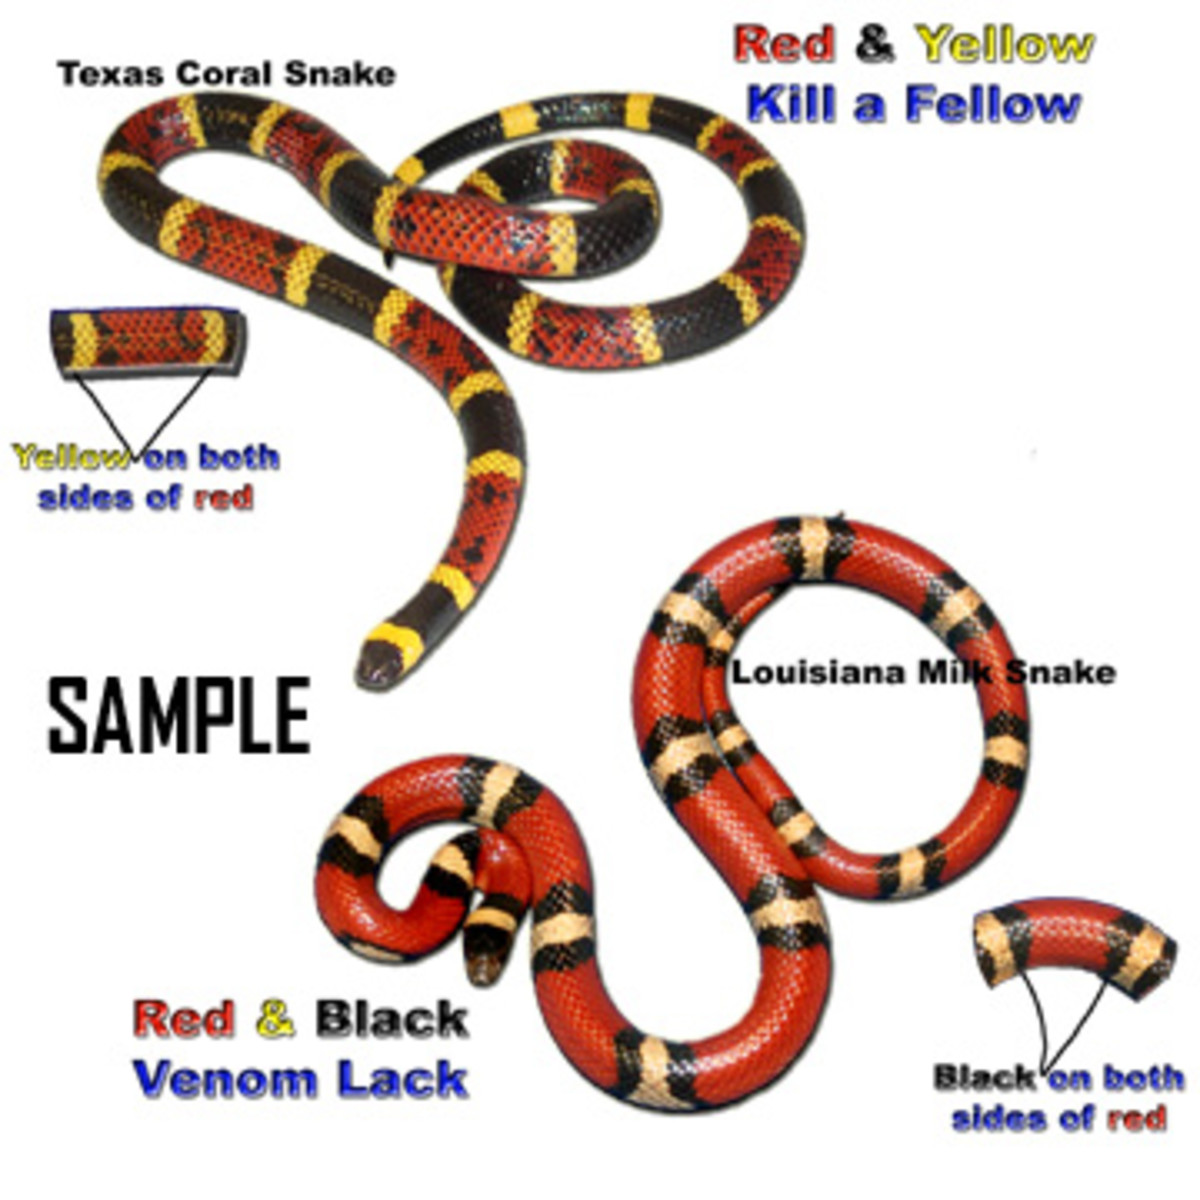 "Remember the saying ""Red touch yellow, kill a fellow; Red touch black, venom lack"" to help distinguish between the venomous Coral Snake and the nonvenomous Milk Snake or King Snake."